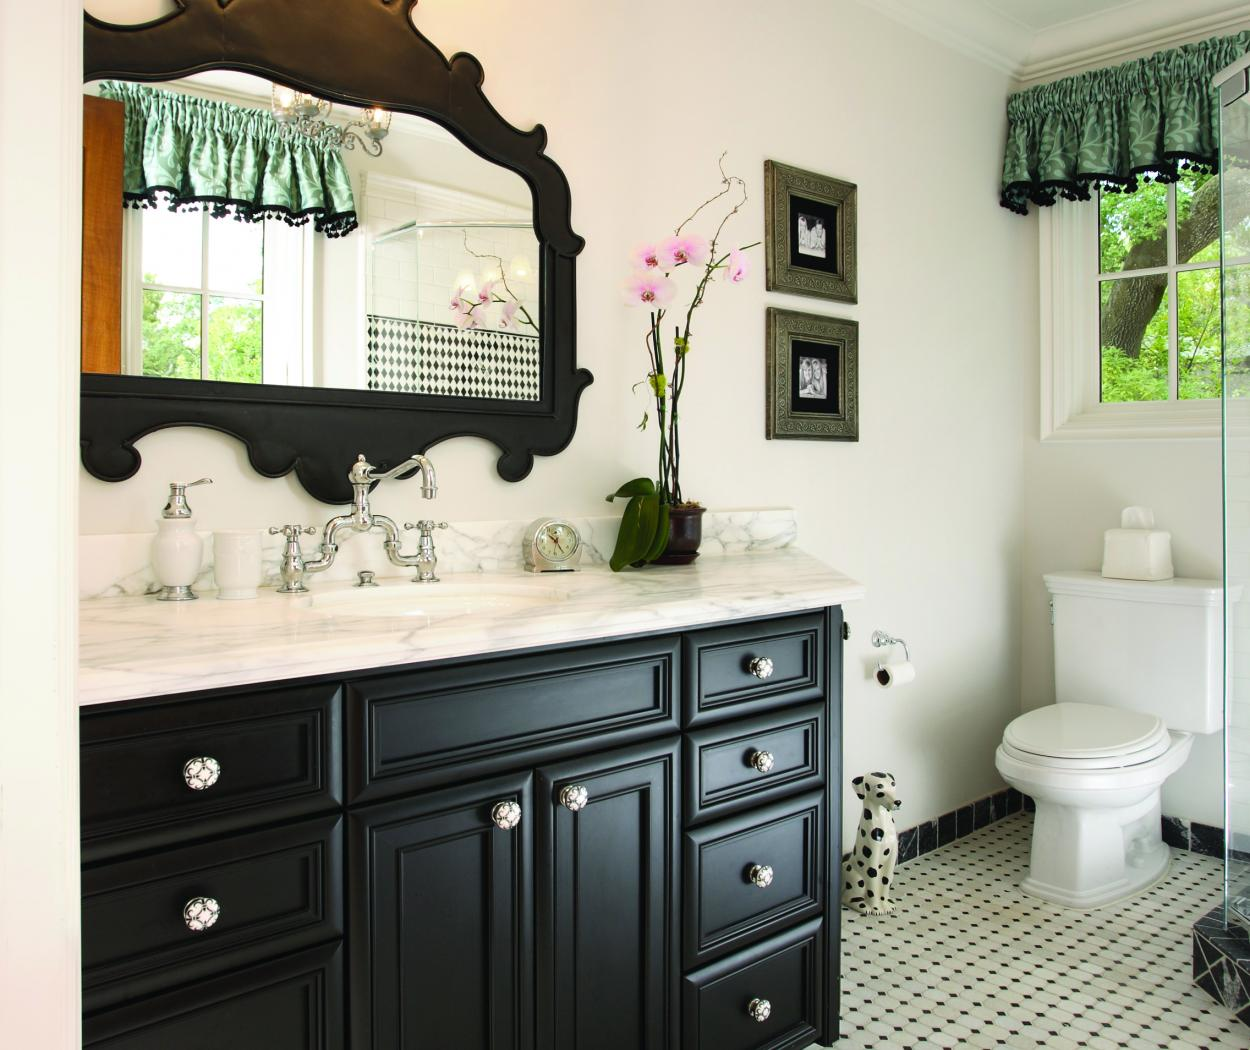 Transitional Bathroom Vanity Stained in Dark Espresso with a Beautiful Marble Counter Top and Decorative Knobs